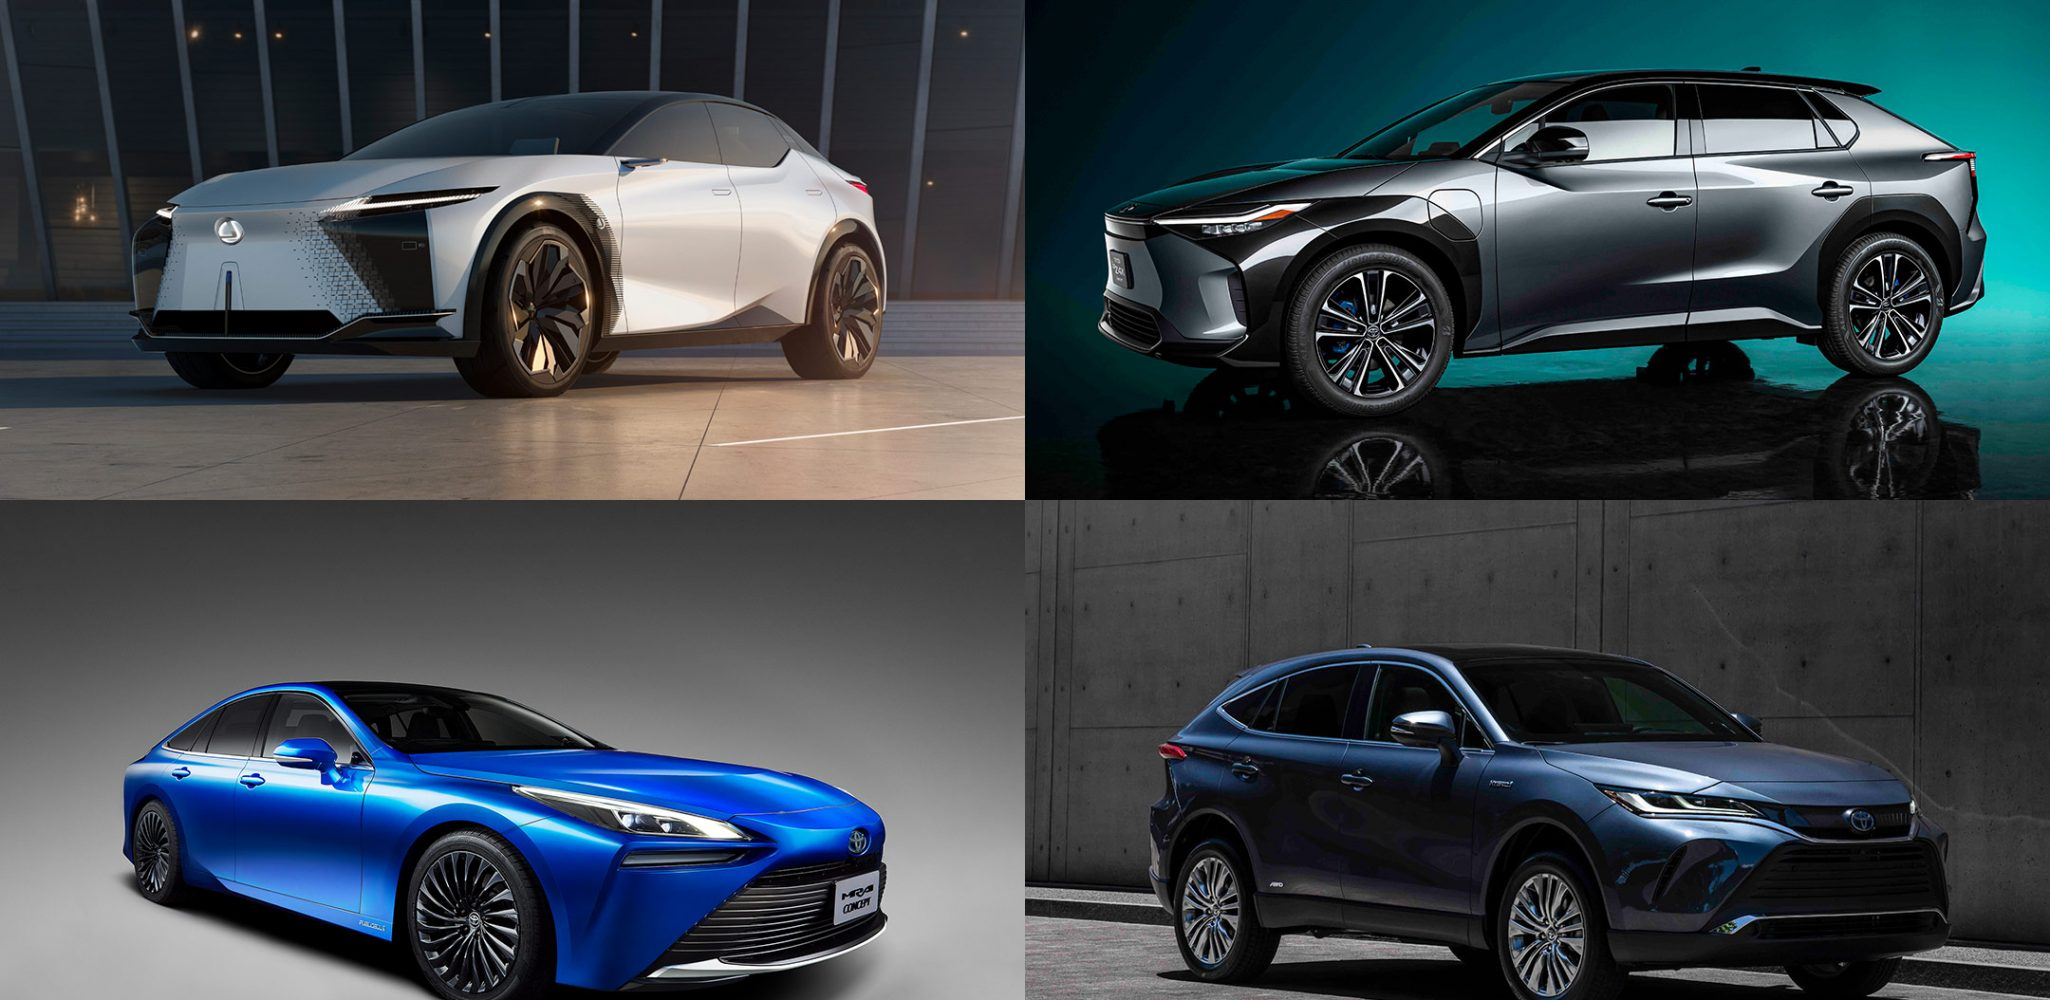 Toyota's Path to Carbon Neutrality